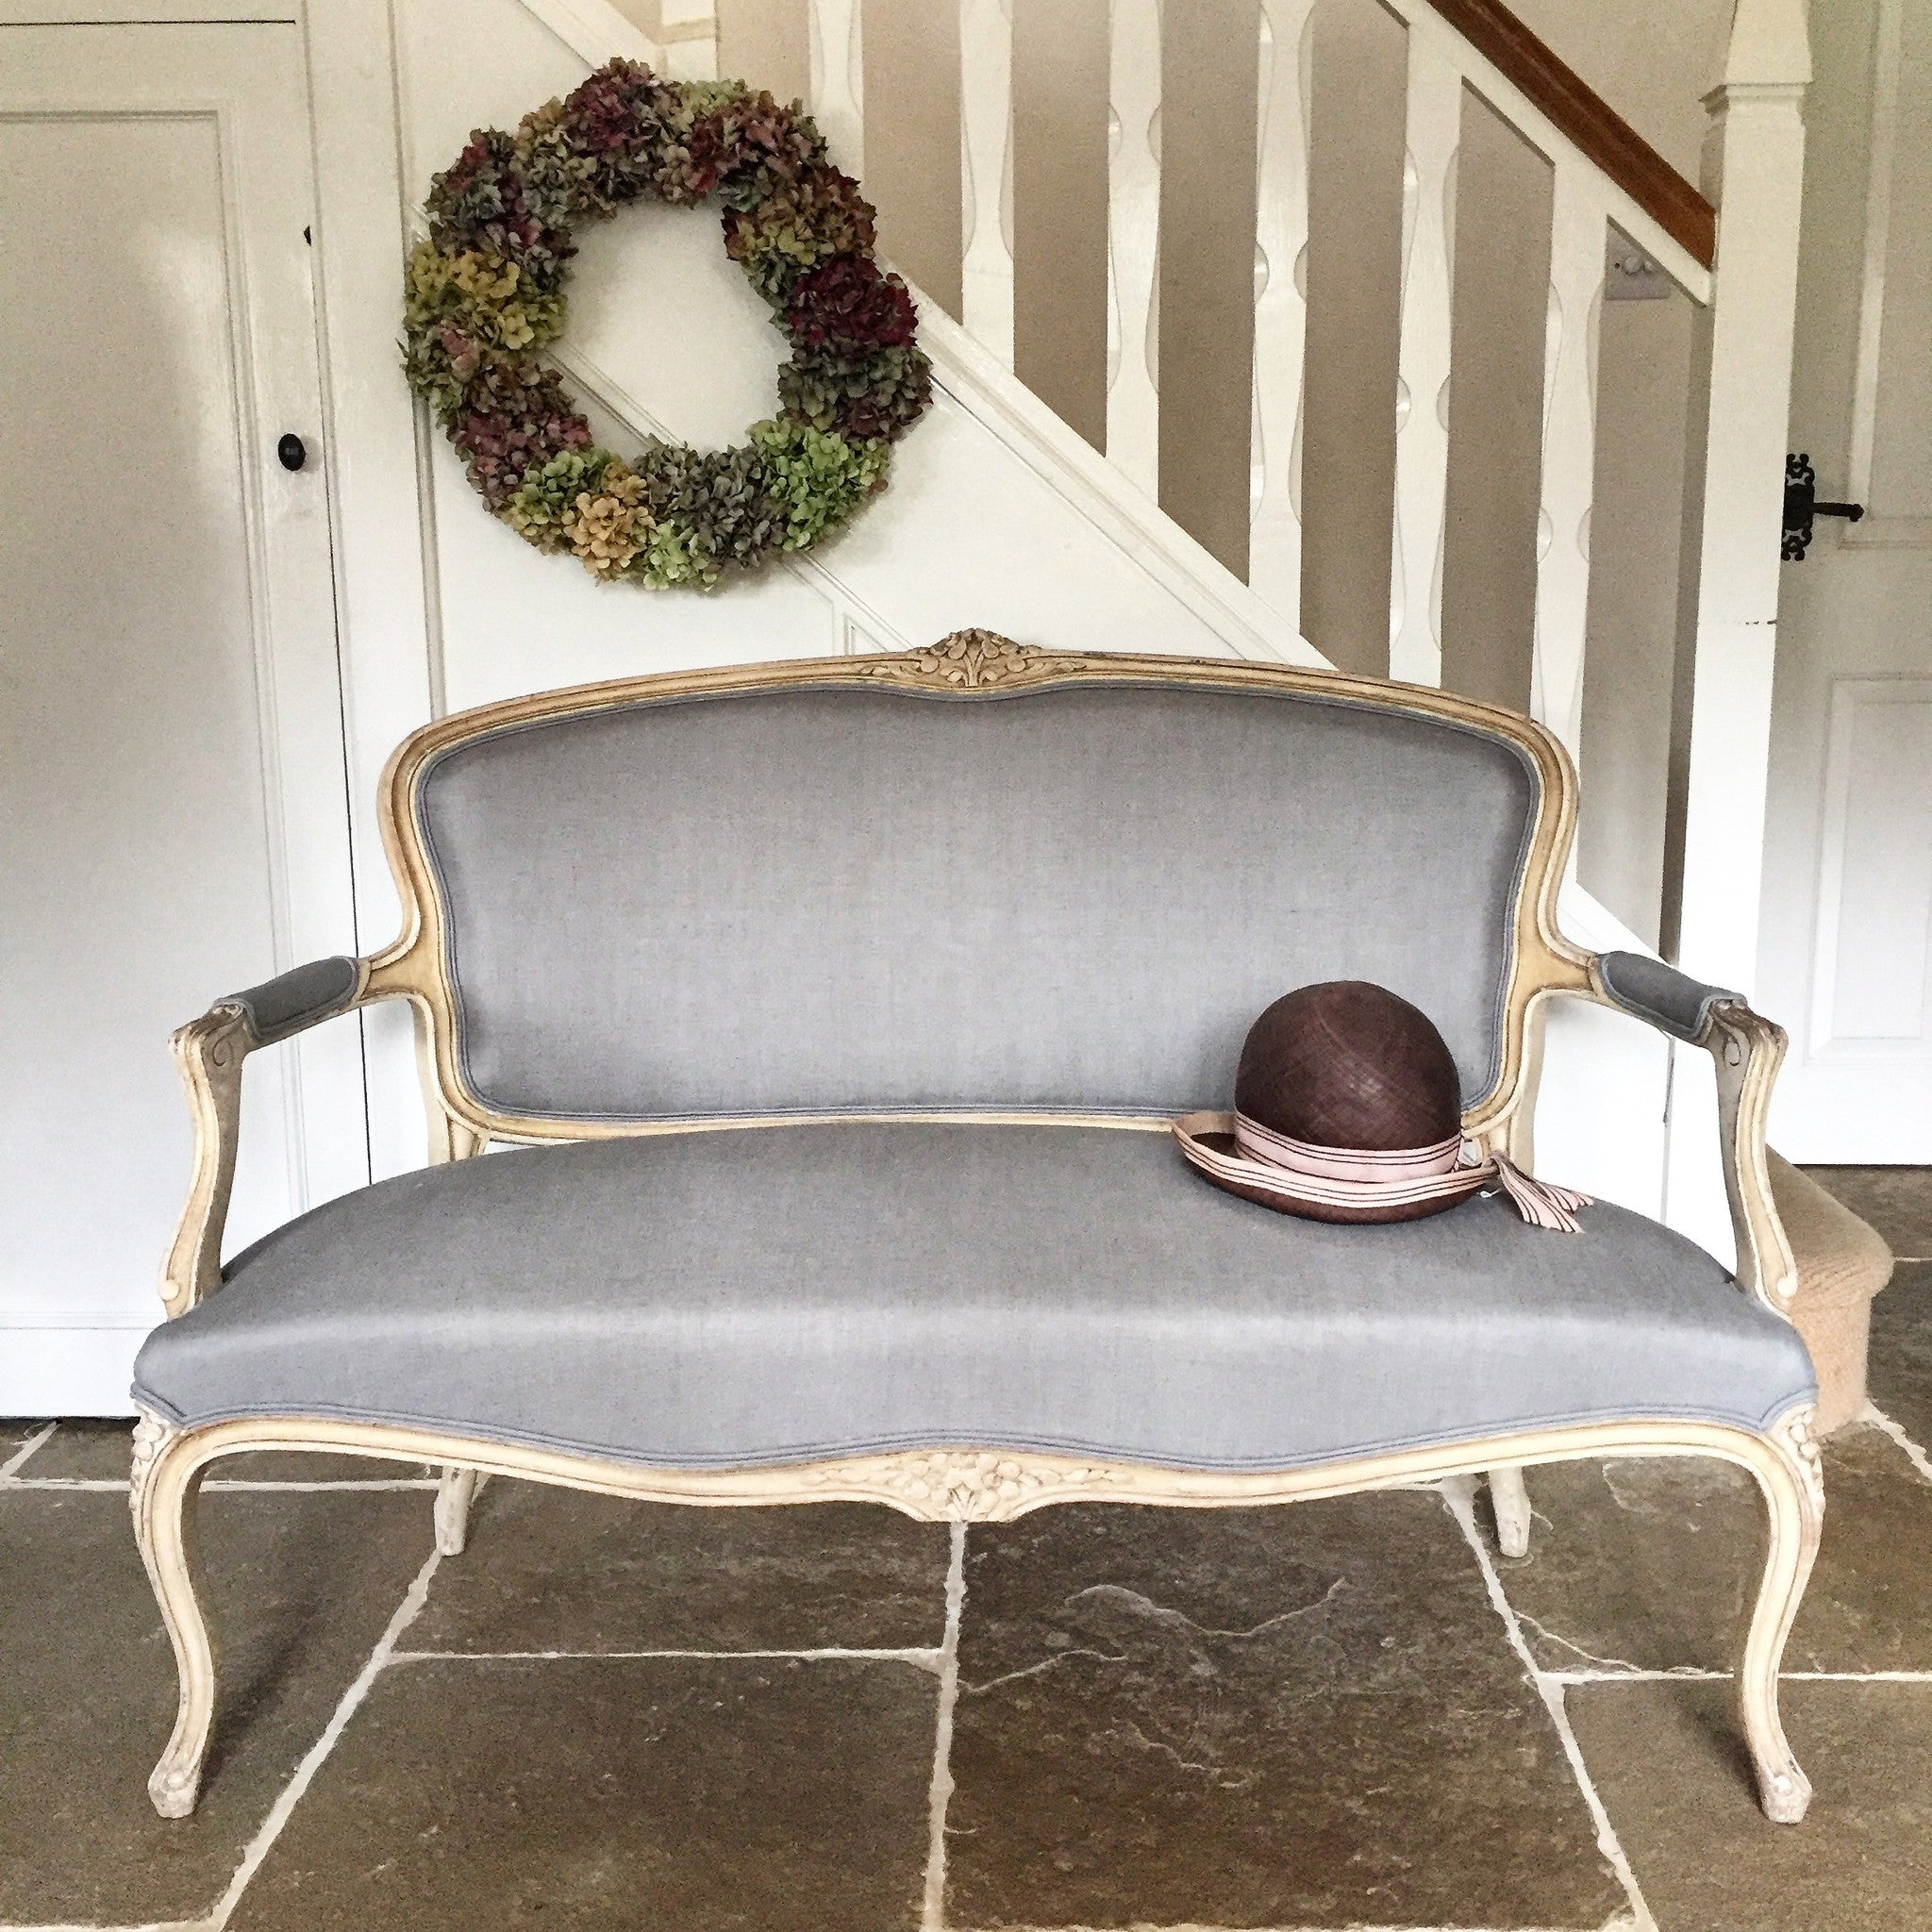 Late 19th century French Canapé Sofa in powder-blue linen.